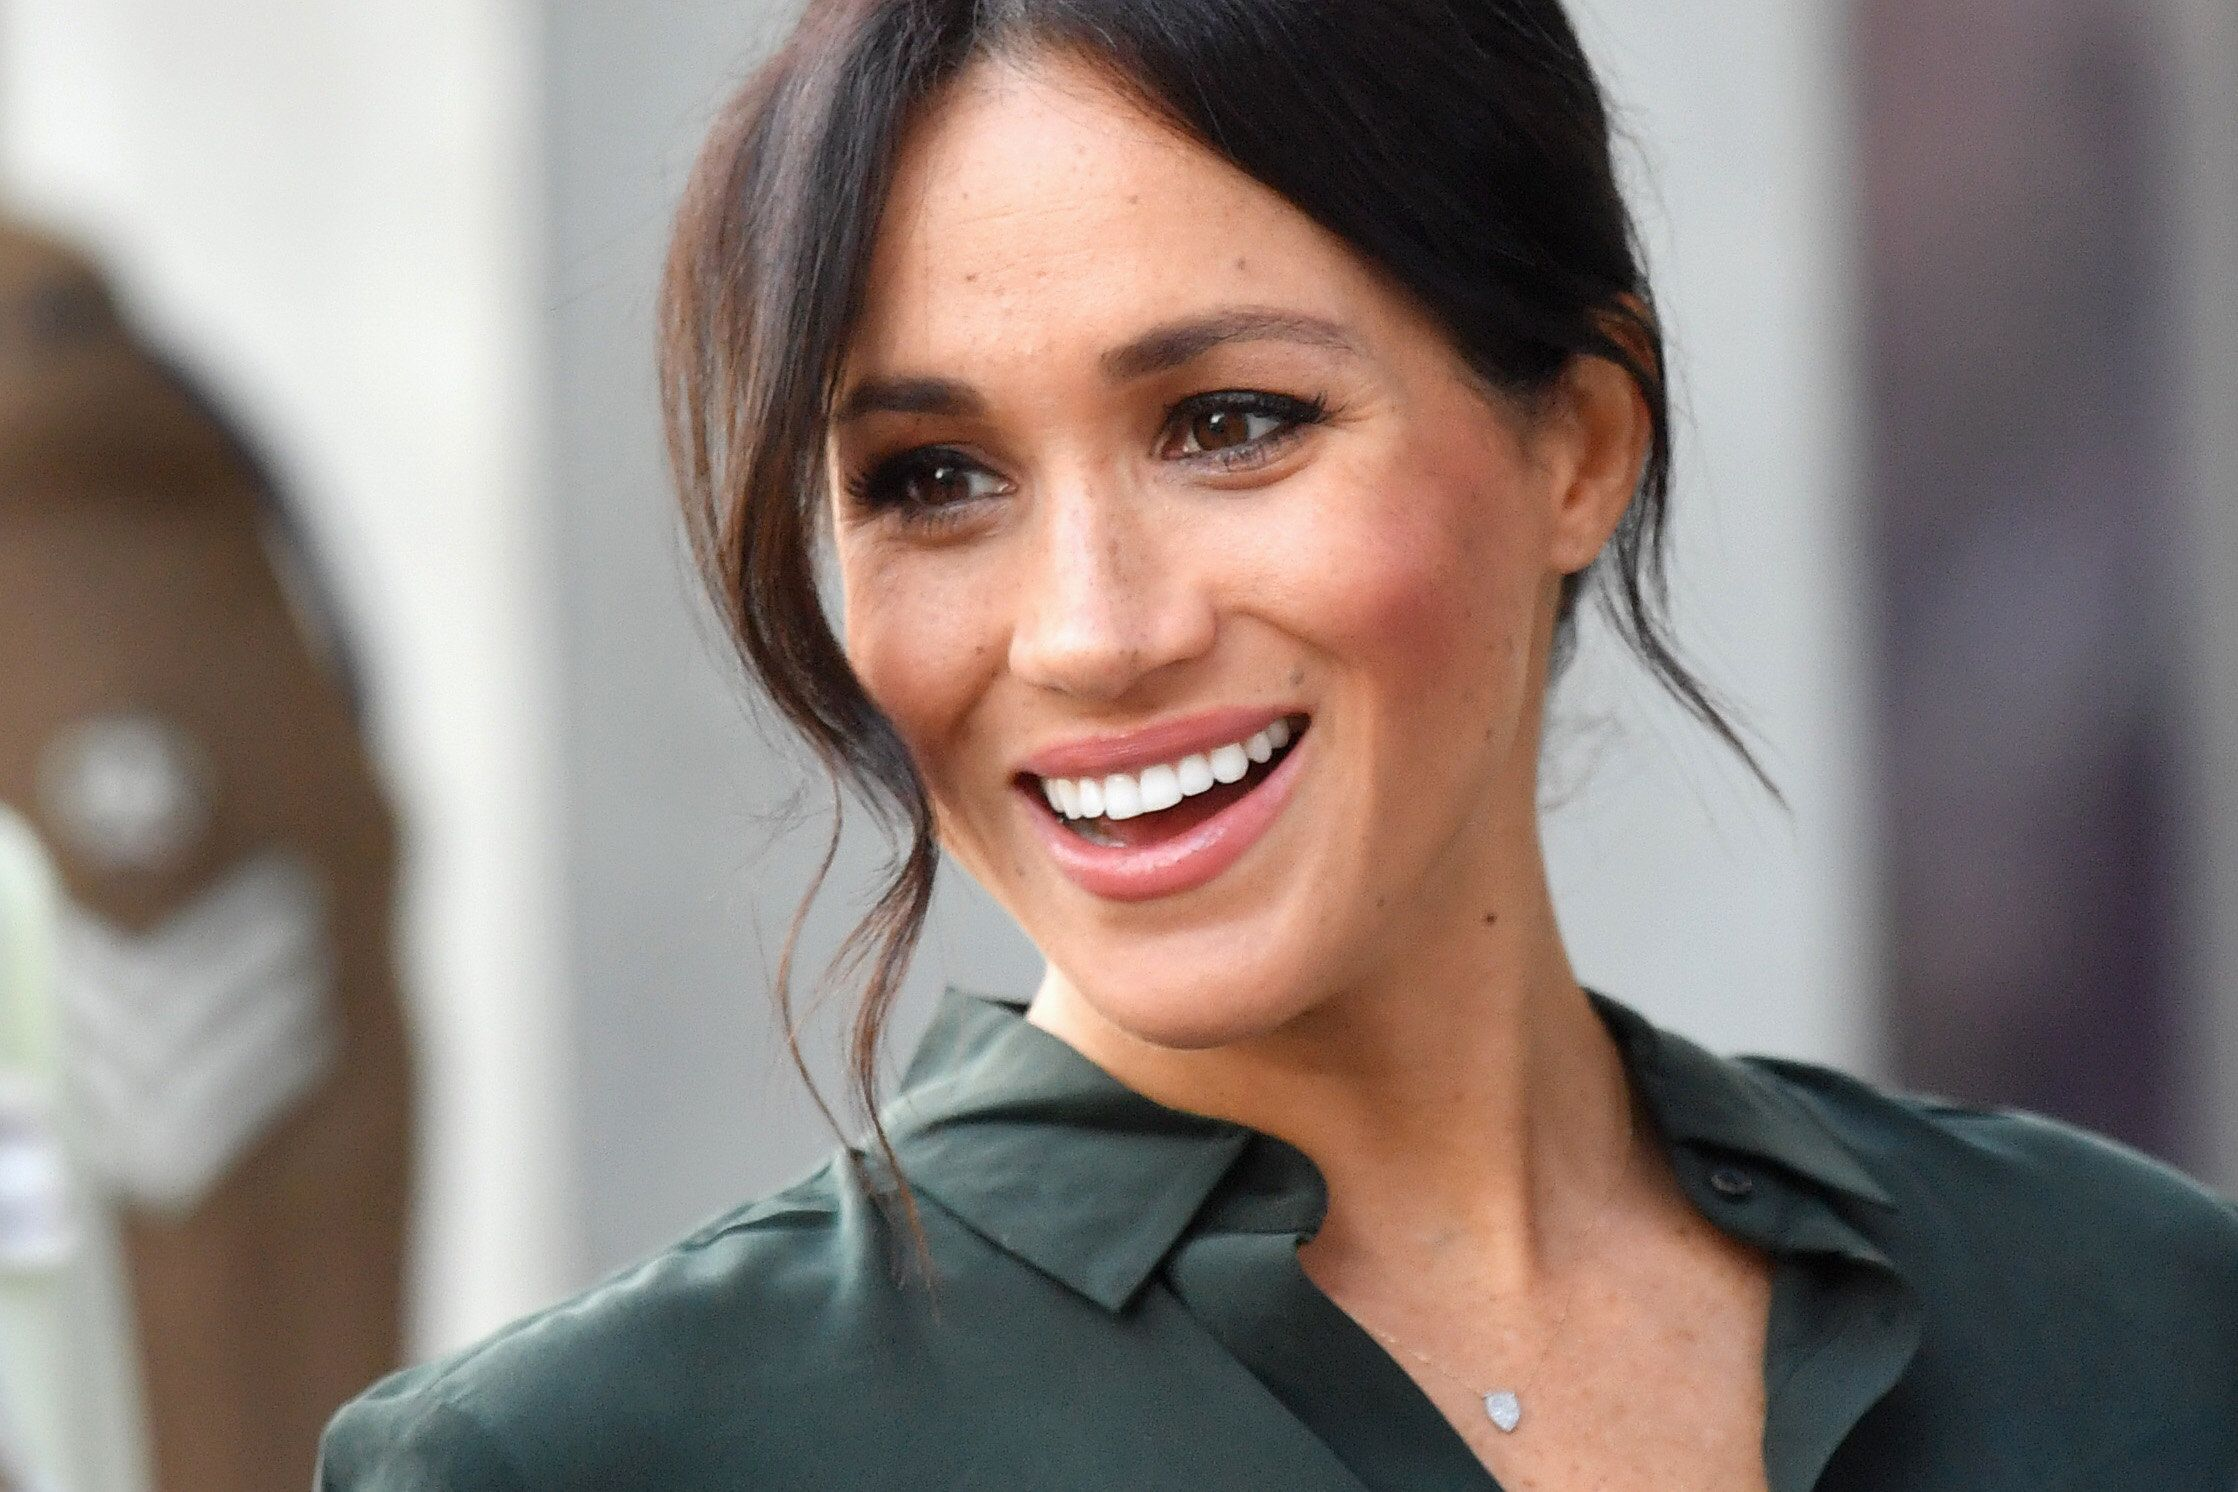 Meghan Markle's Green Leather Look Is A Royal